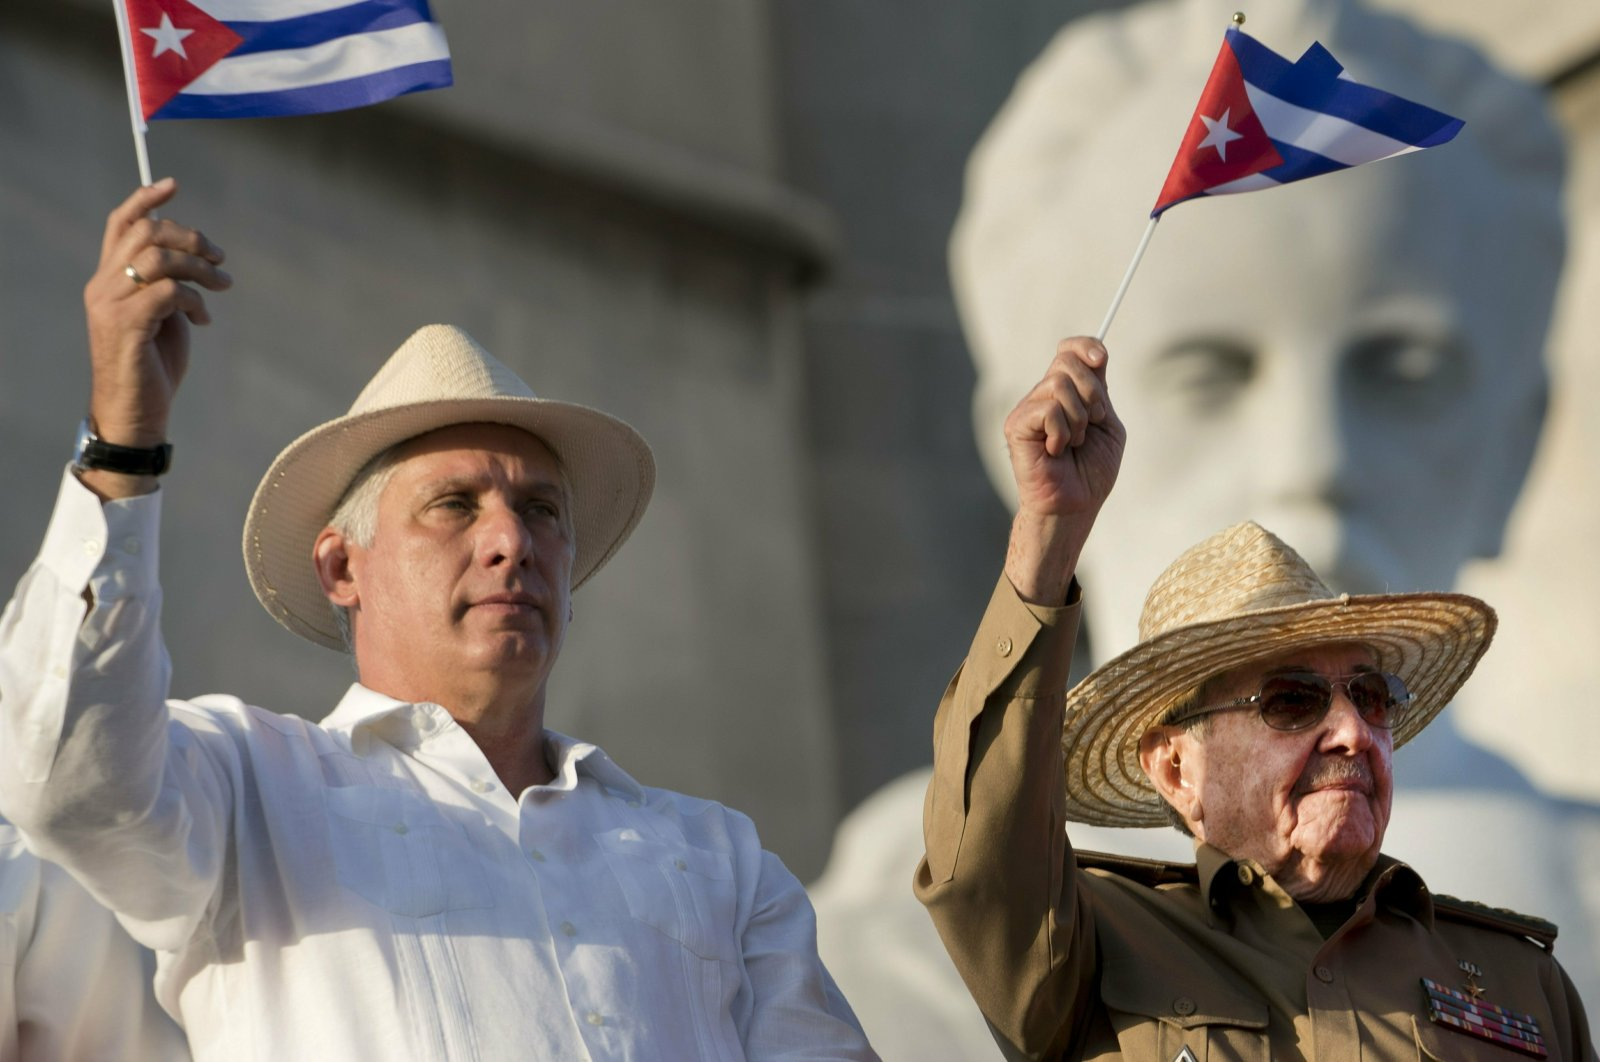 Cuba's President Miguel Diaz-Canel (L) and former Cuban President Raul Castro wave Cuban flags as they watch the annual May Day parade file past at Revolution Square in Havana, Cuba, May 1, 2019. (AP Photo)